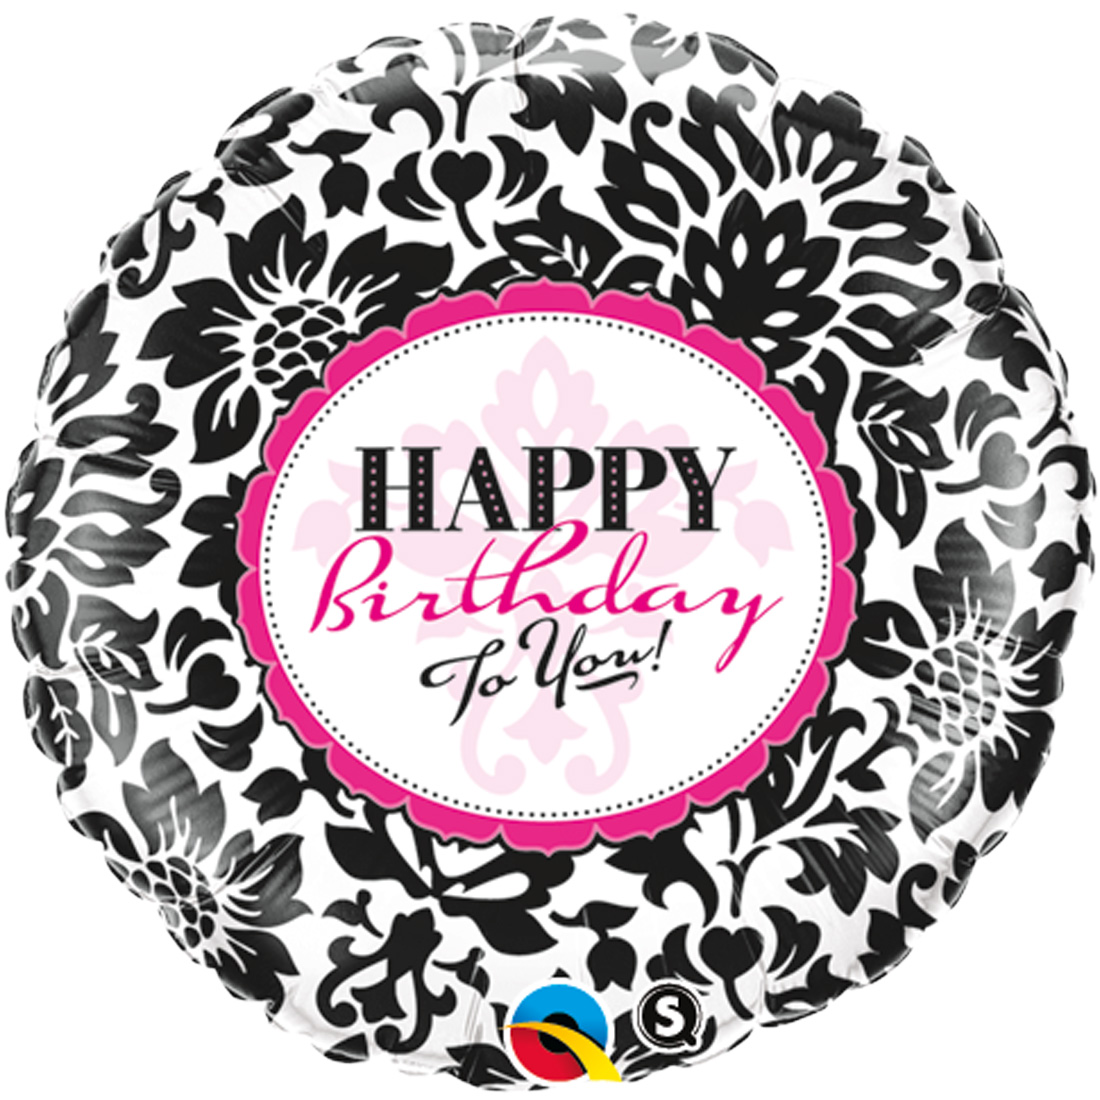 "Qualatex Happy Birthday to You Elegant Damask 18"" Foil Balloon, Black White Pink"